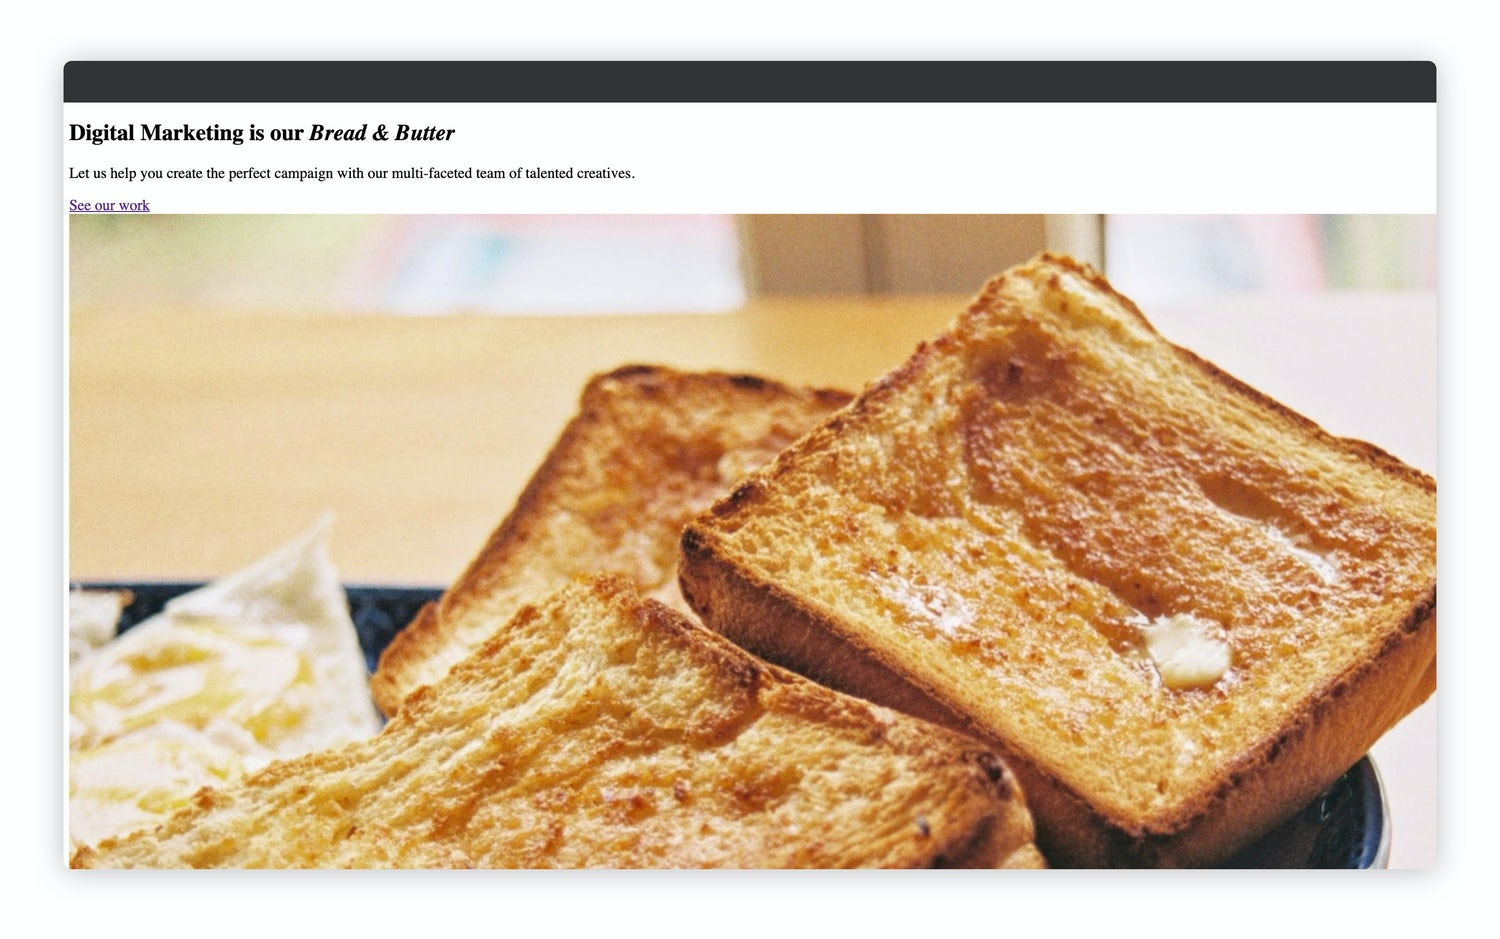 The same homepage with an image of toast that's now successfully loaded